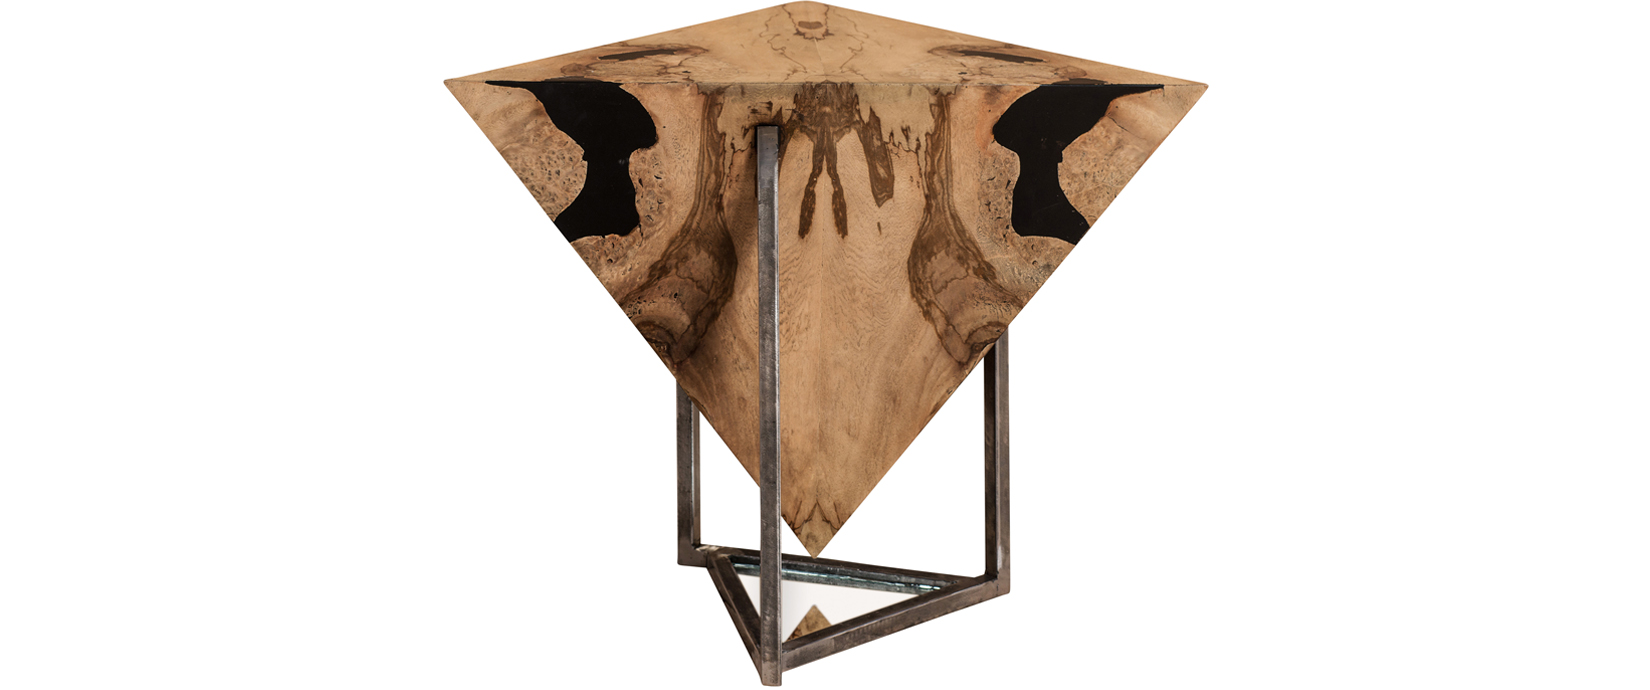 Braga triangular lamp table taracea braga triangular lamp table aloadofball Gallery